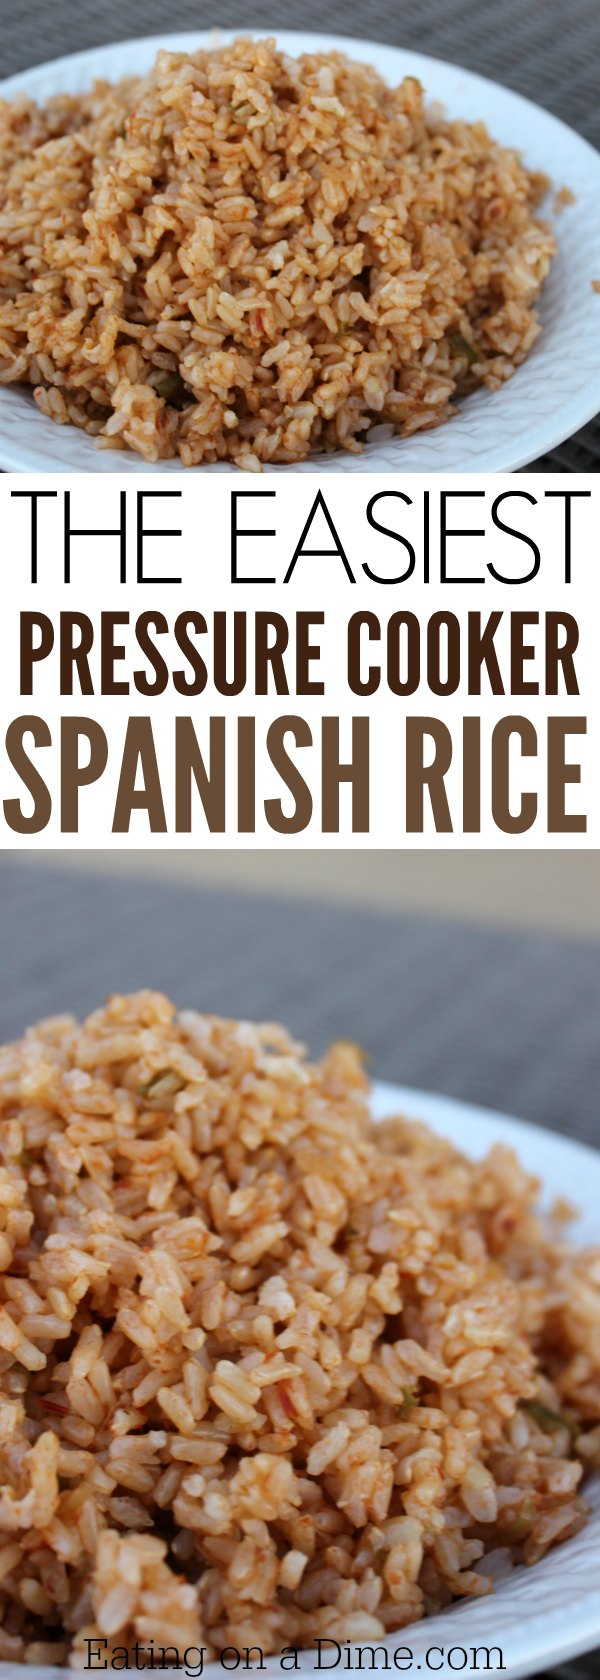 Try This Spanish Rice Pressure Cooker Recipe This Is The Best Spanish Rice  With Brown